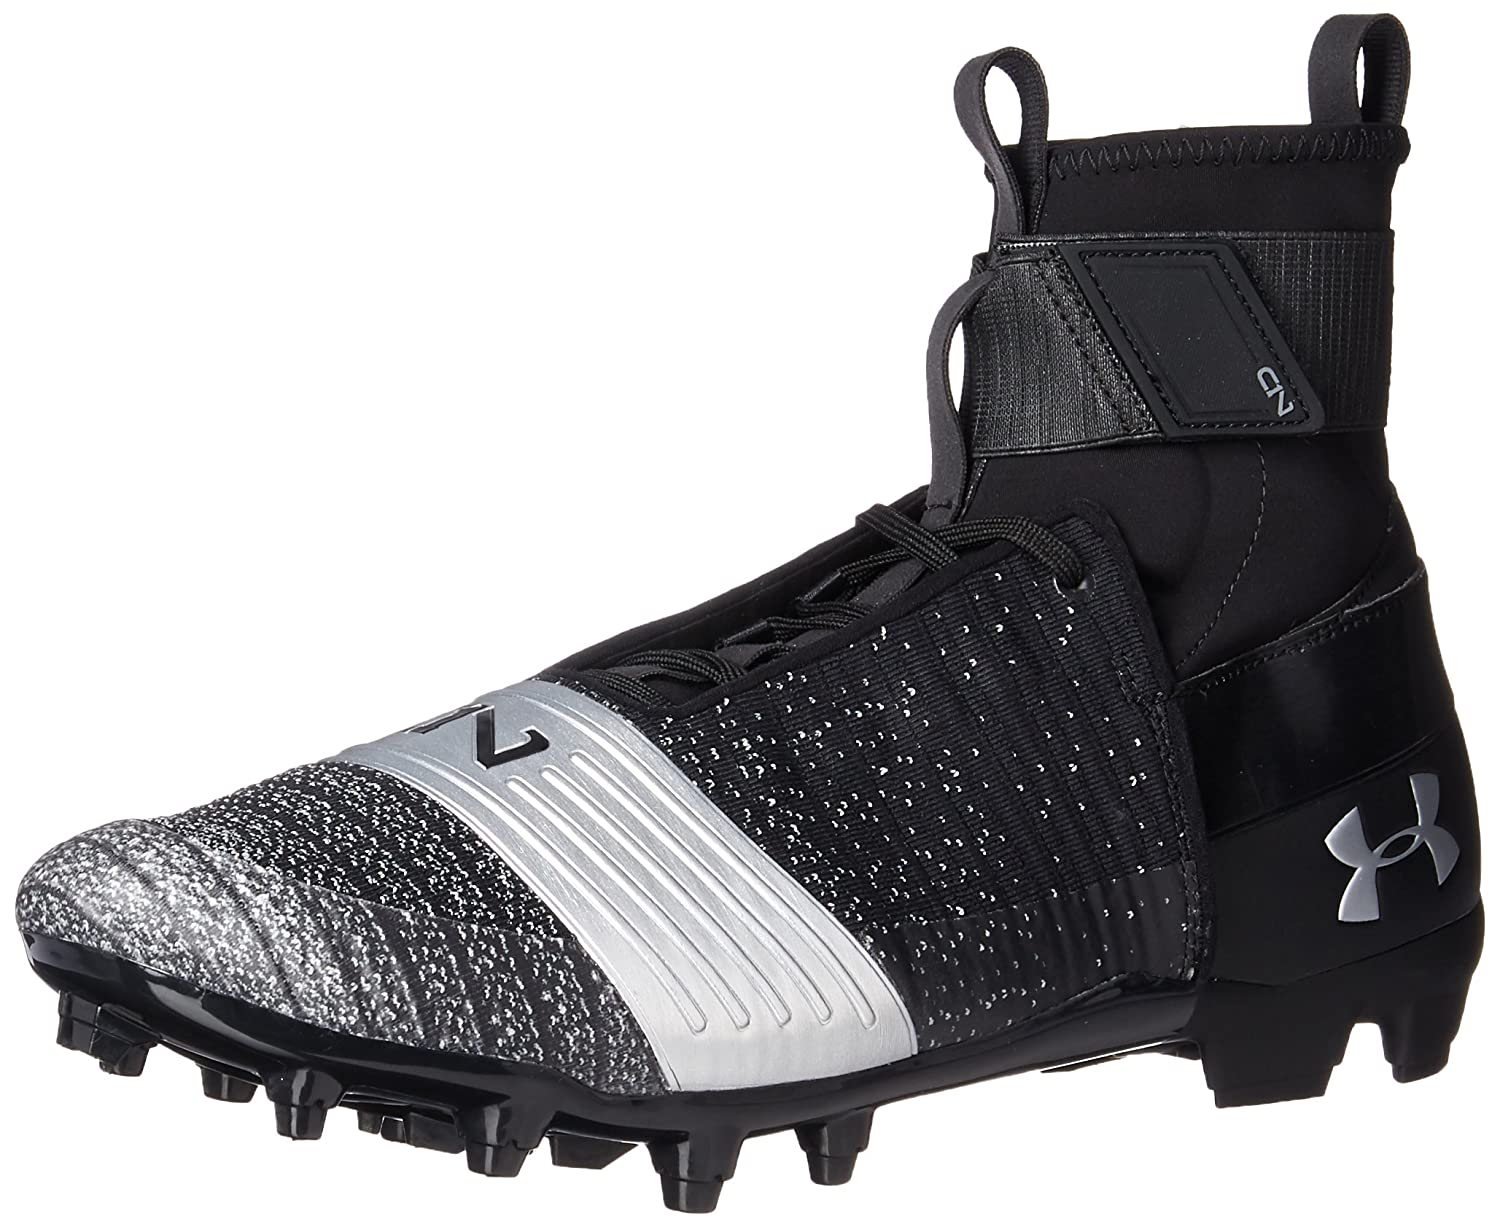 Under Armour メンズ 3000175 B072FR3X8P 7.5 D(M) US|Black (001)/Metallic Silver Black (001)/Metallic Silver 7.5 D(M) US